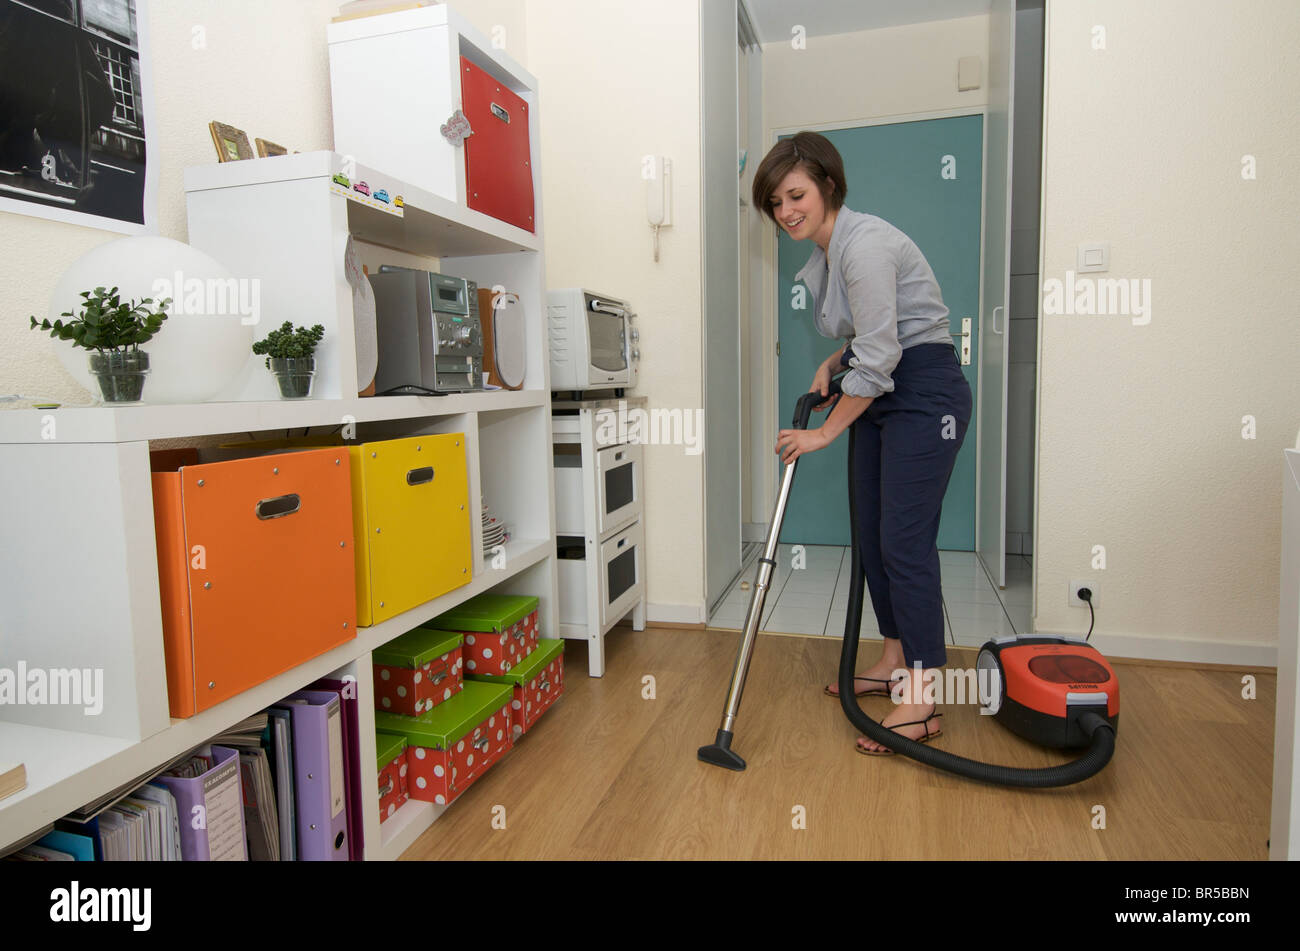 Young woman doing housework cleaning with a vacuum cleaner - Stock Image